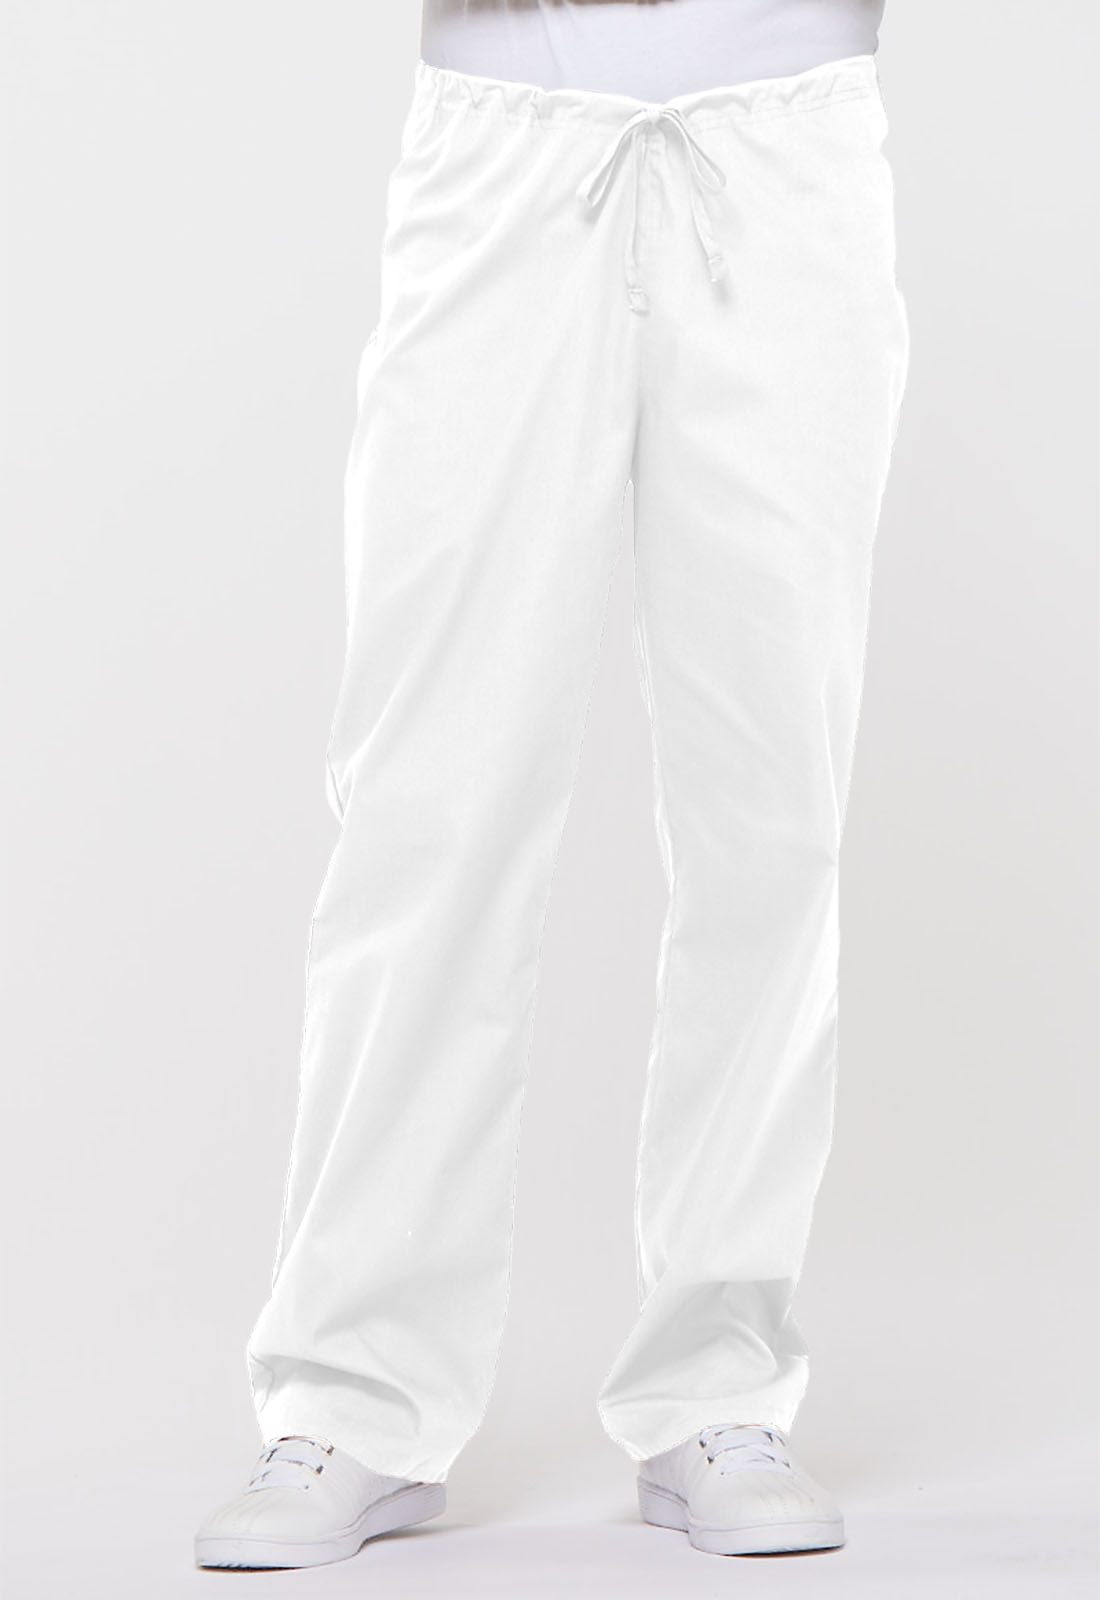 5b0faca1262 Dickies EDS Signature Unisex Drawstring Pant in White from Dickies ...